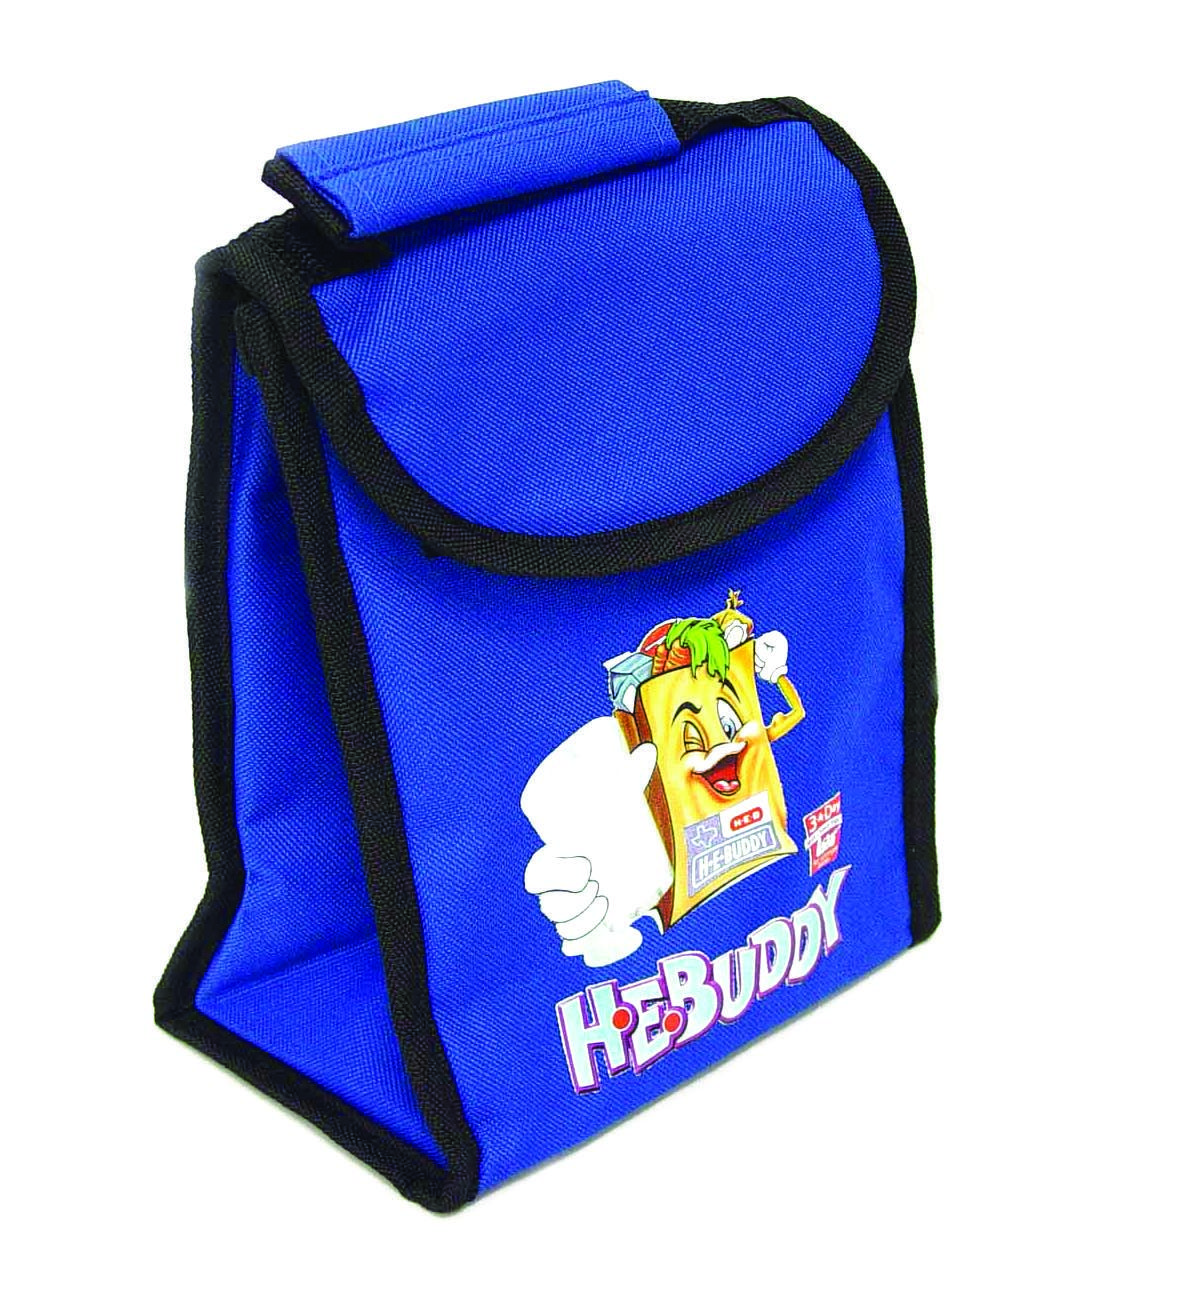 Custom Order Lunch Bag from Greater China